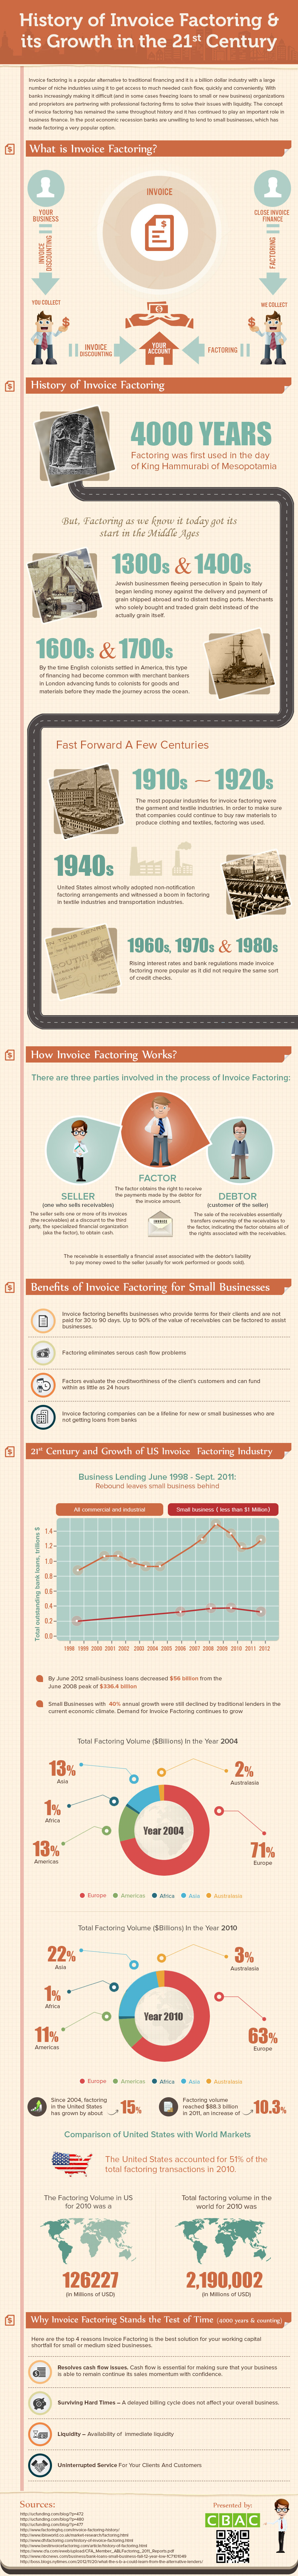 History of Invoice Factoring